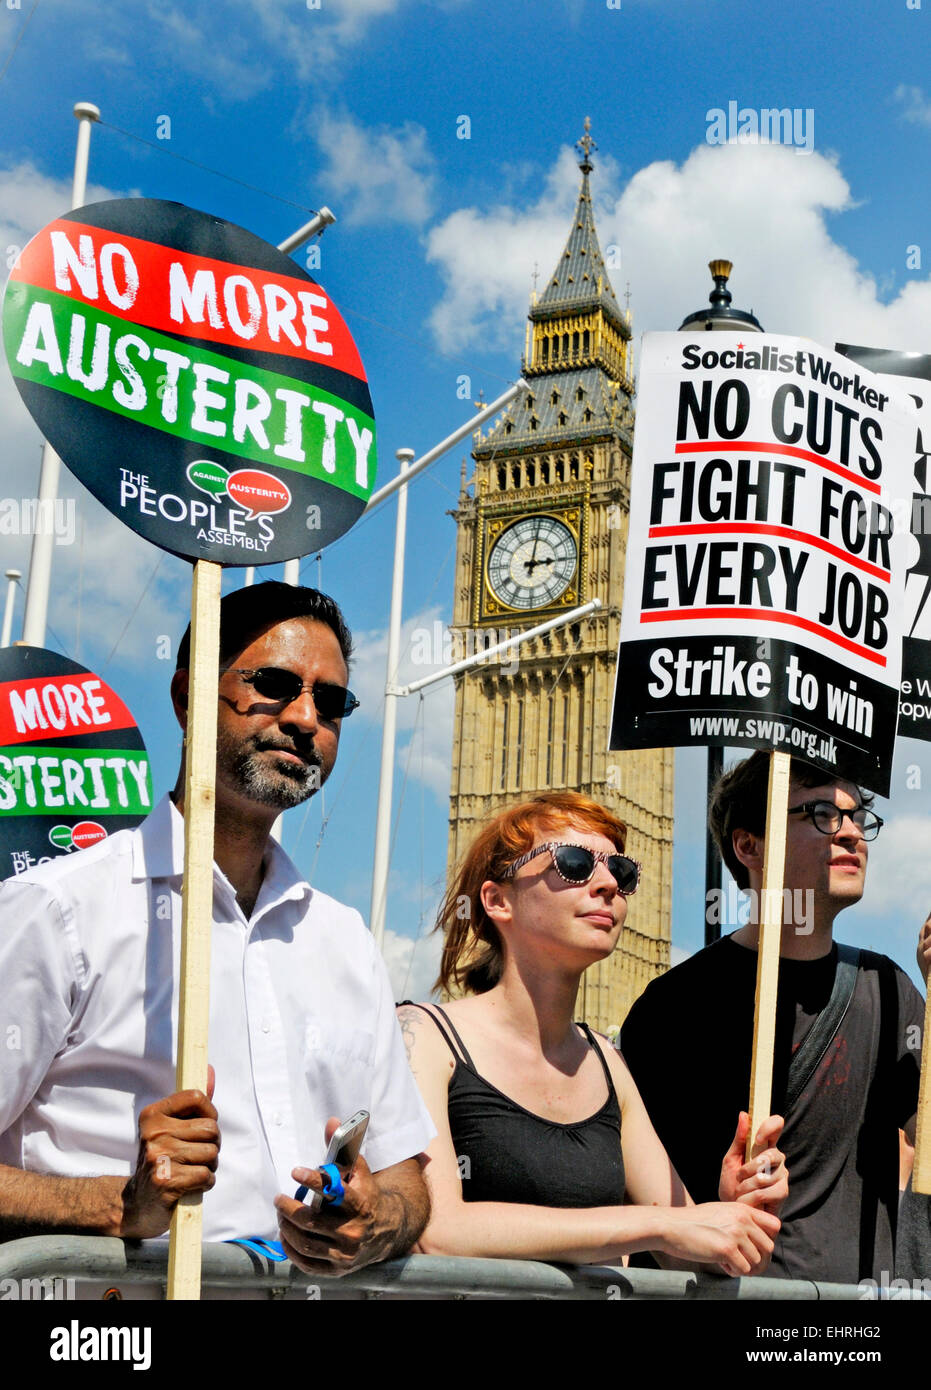 People holding No More Austerity placards at the People's Assembly march against Austerity, London, 21st June - Stock Image